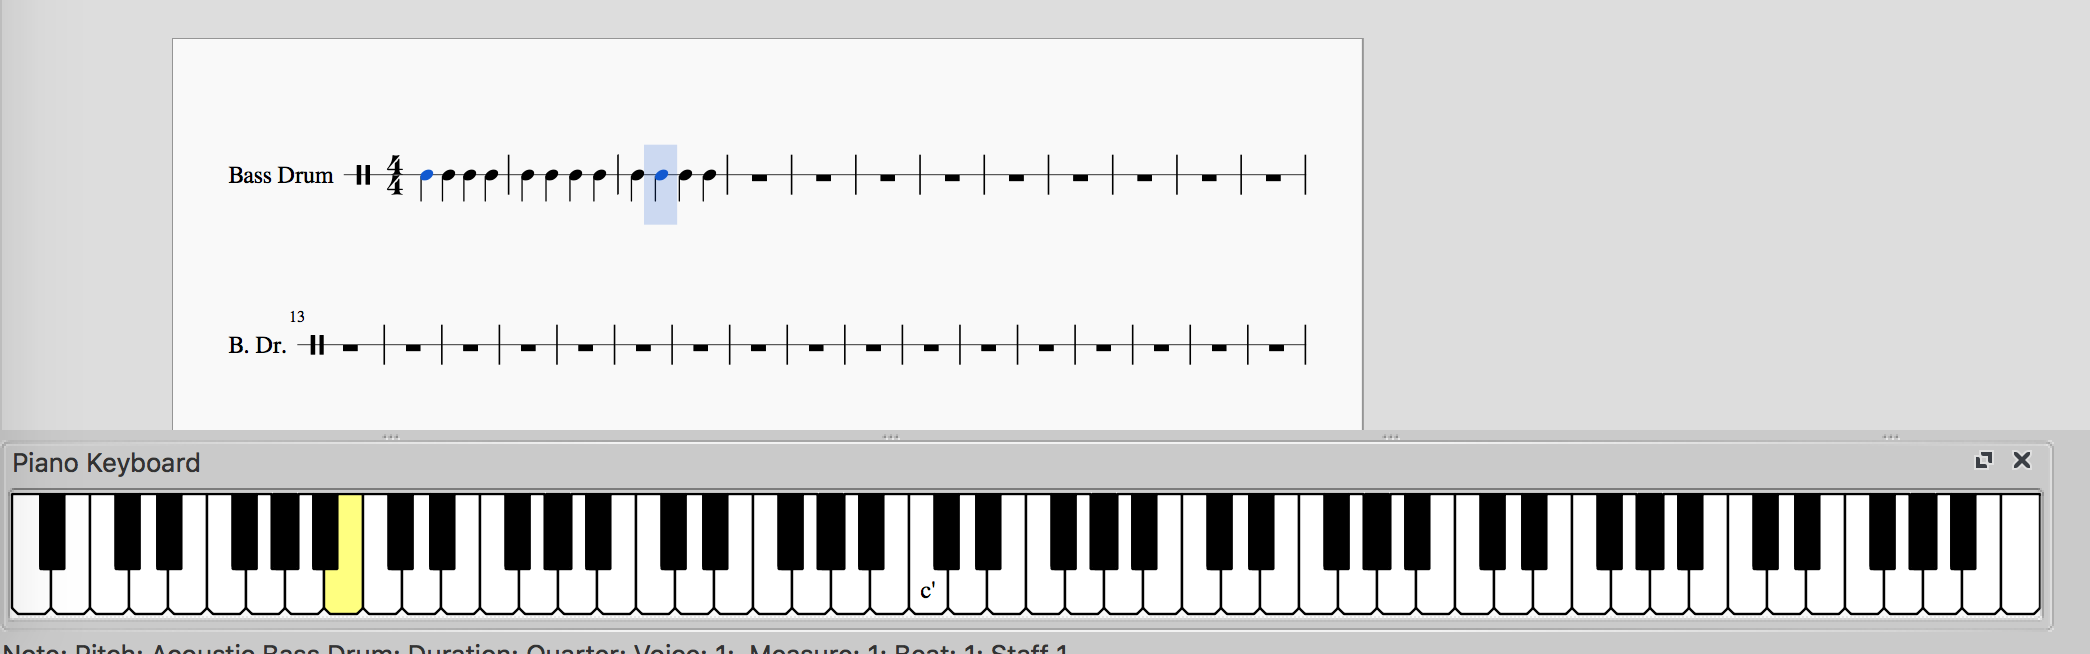 Piano Keyboard shows pressed notes for unpitched percussion